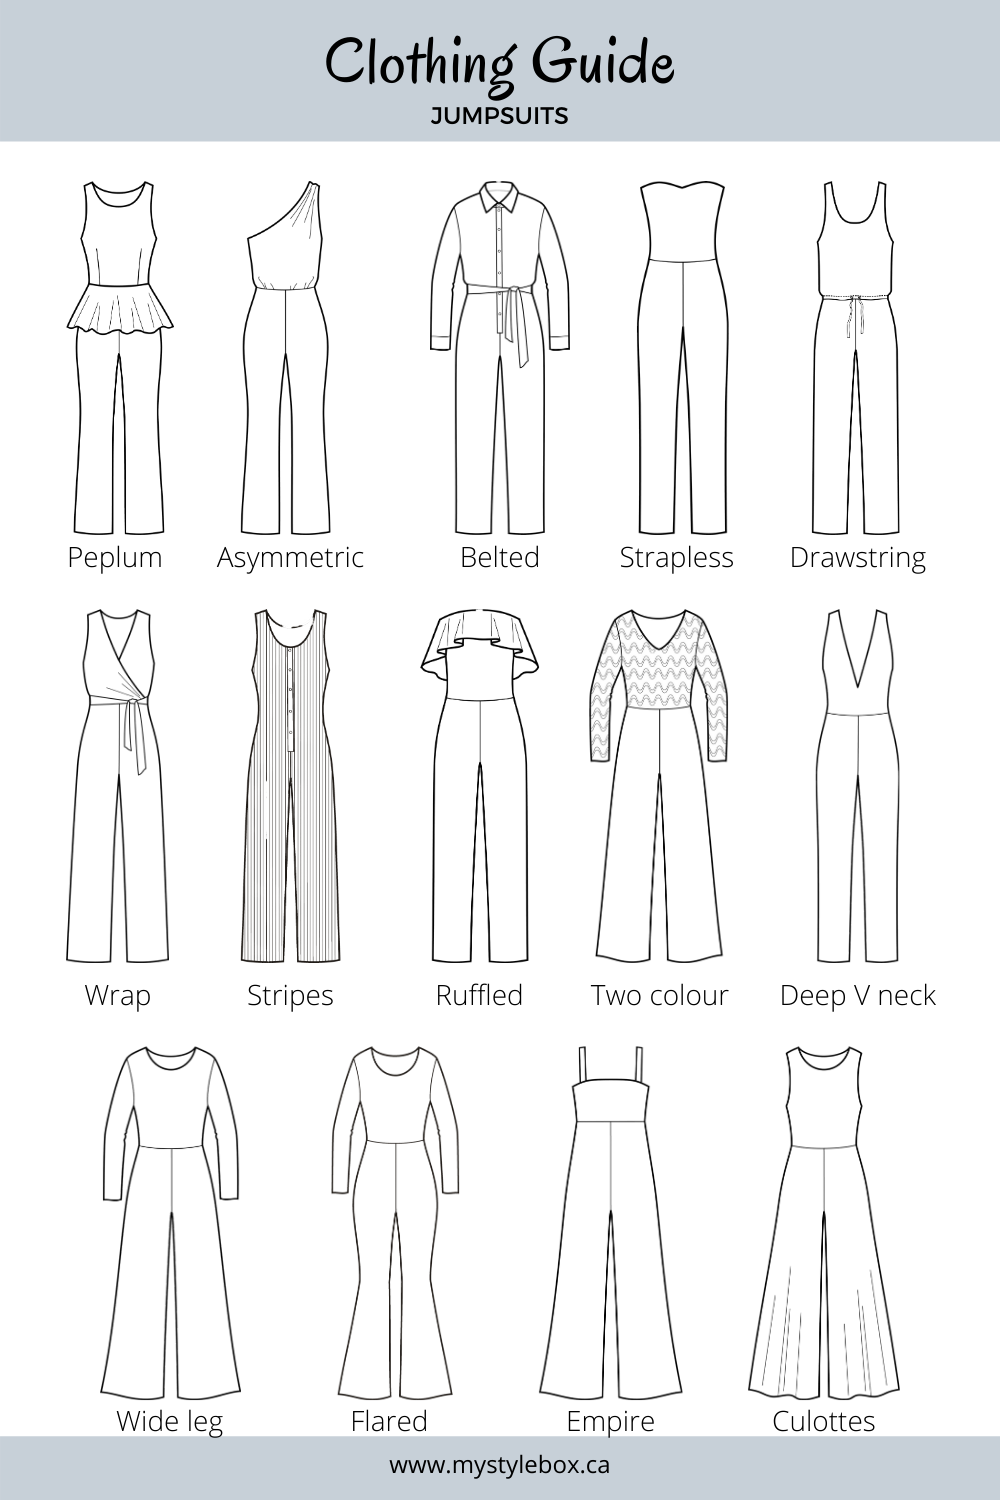 Types of Jumpsuits